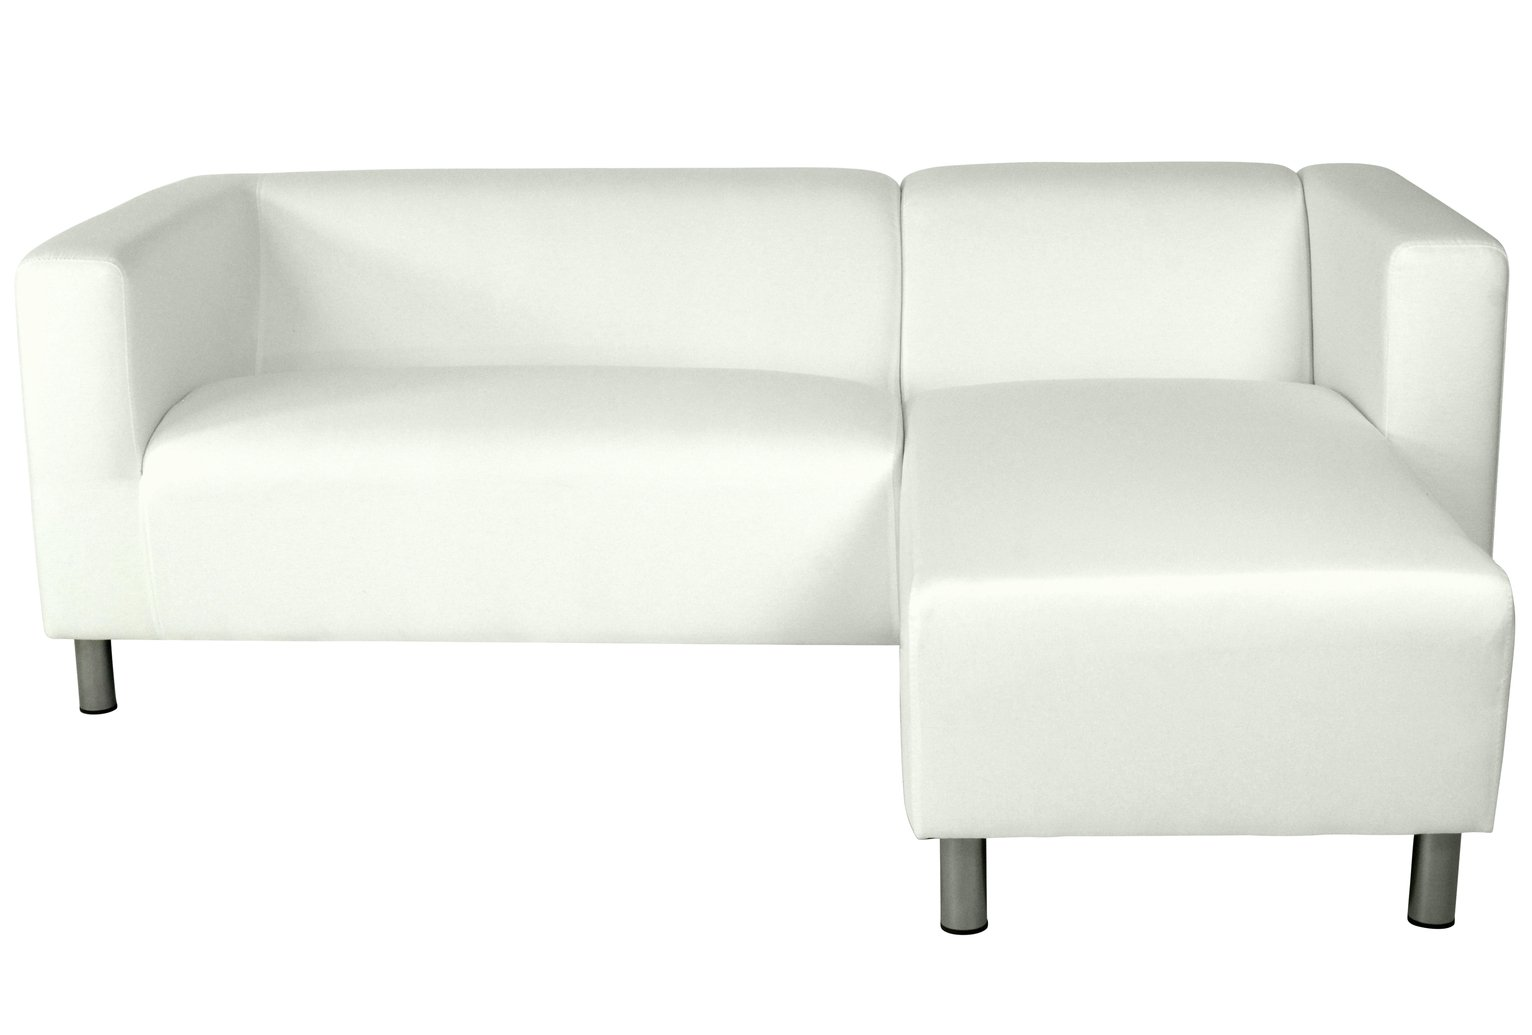 Argos Home Moda Right Corner Fabric Sofa - White